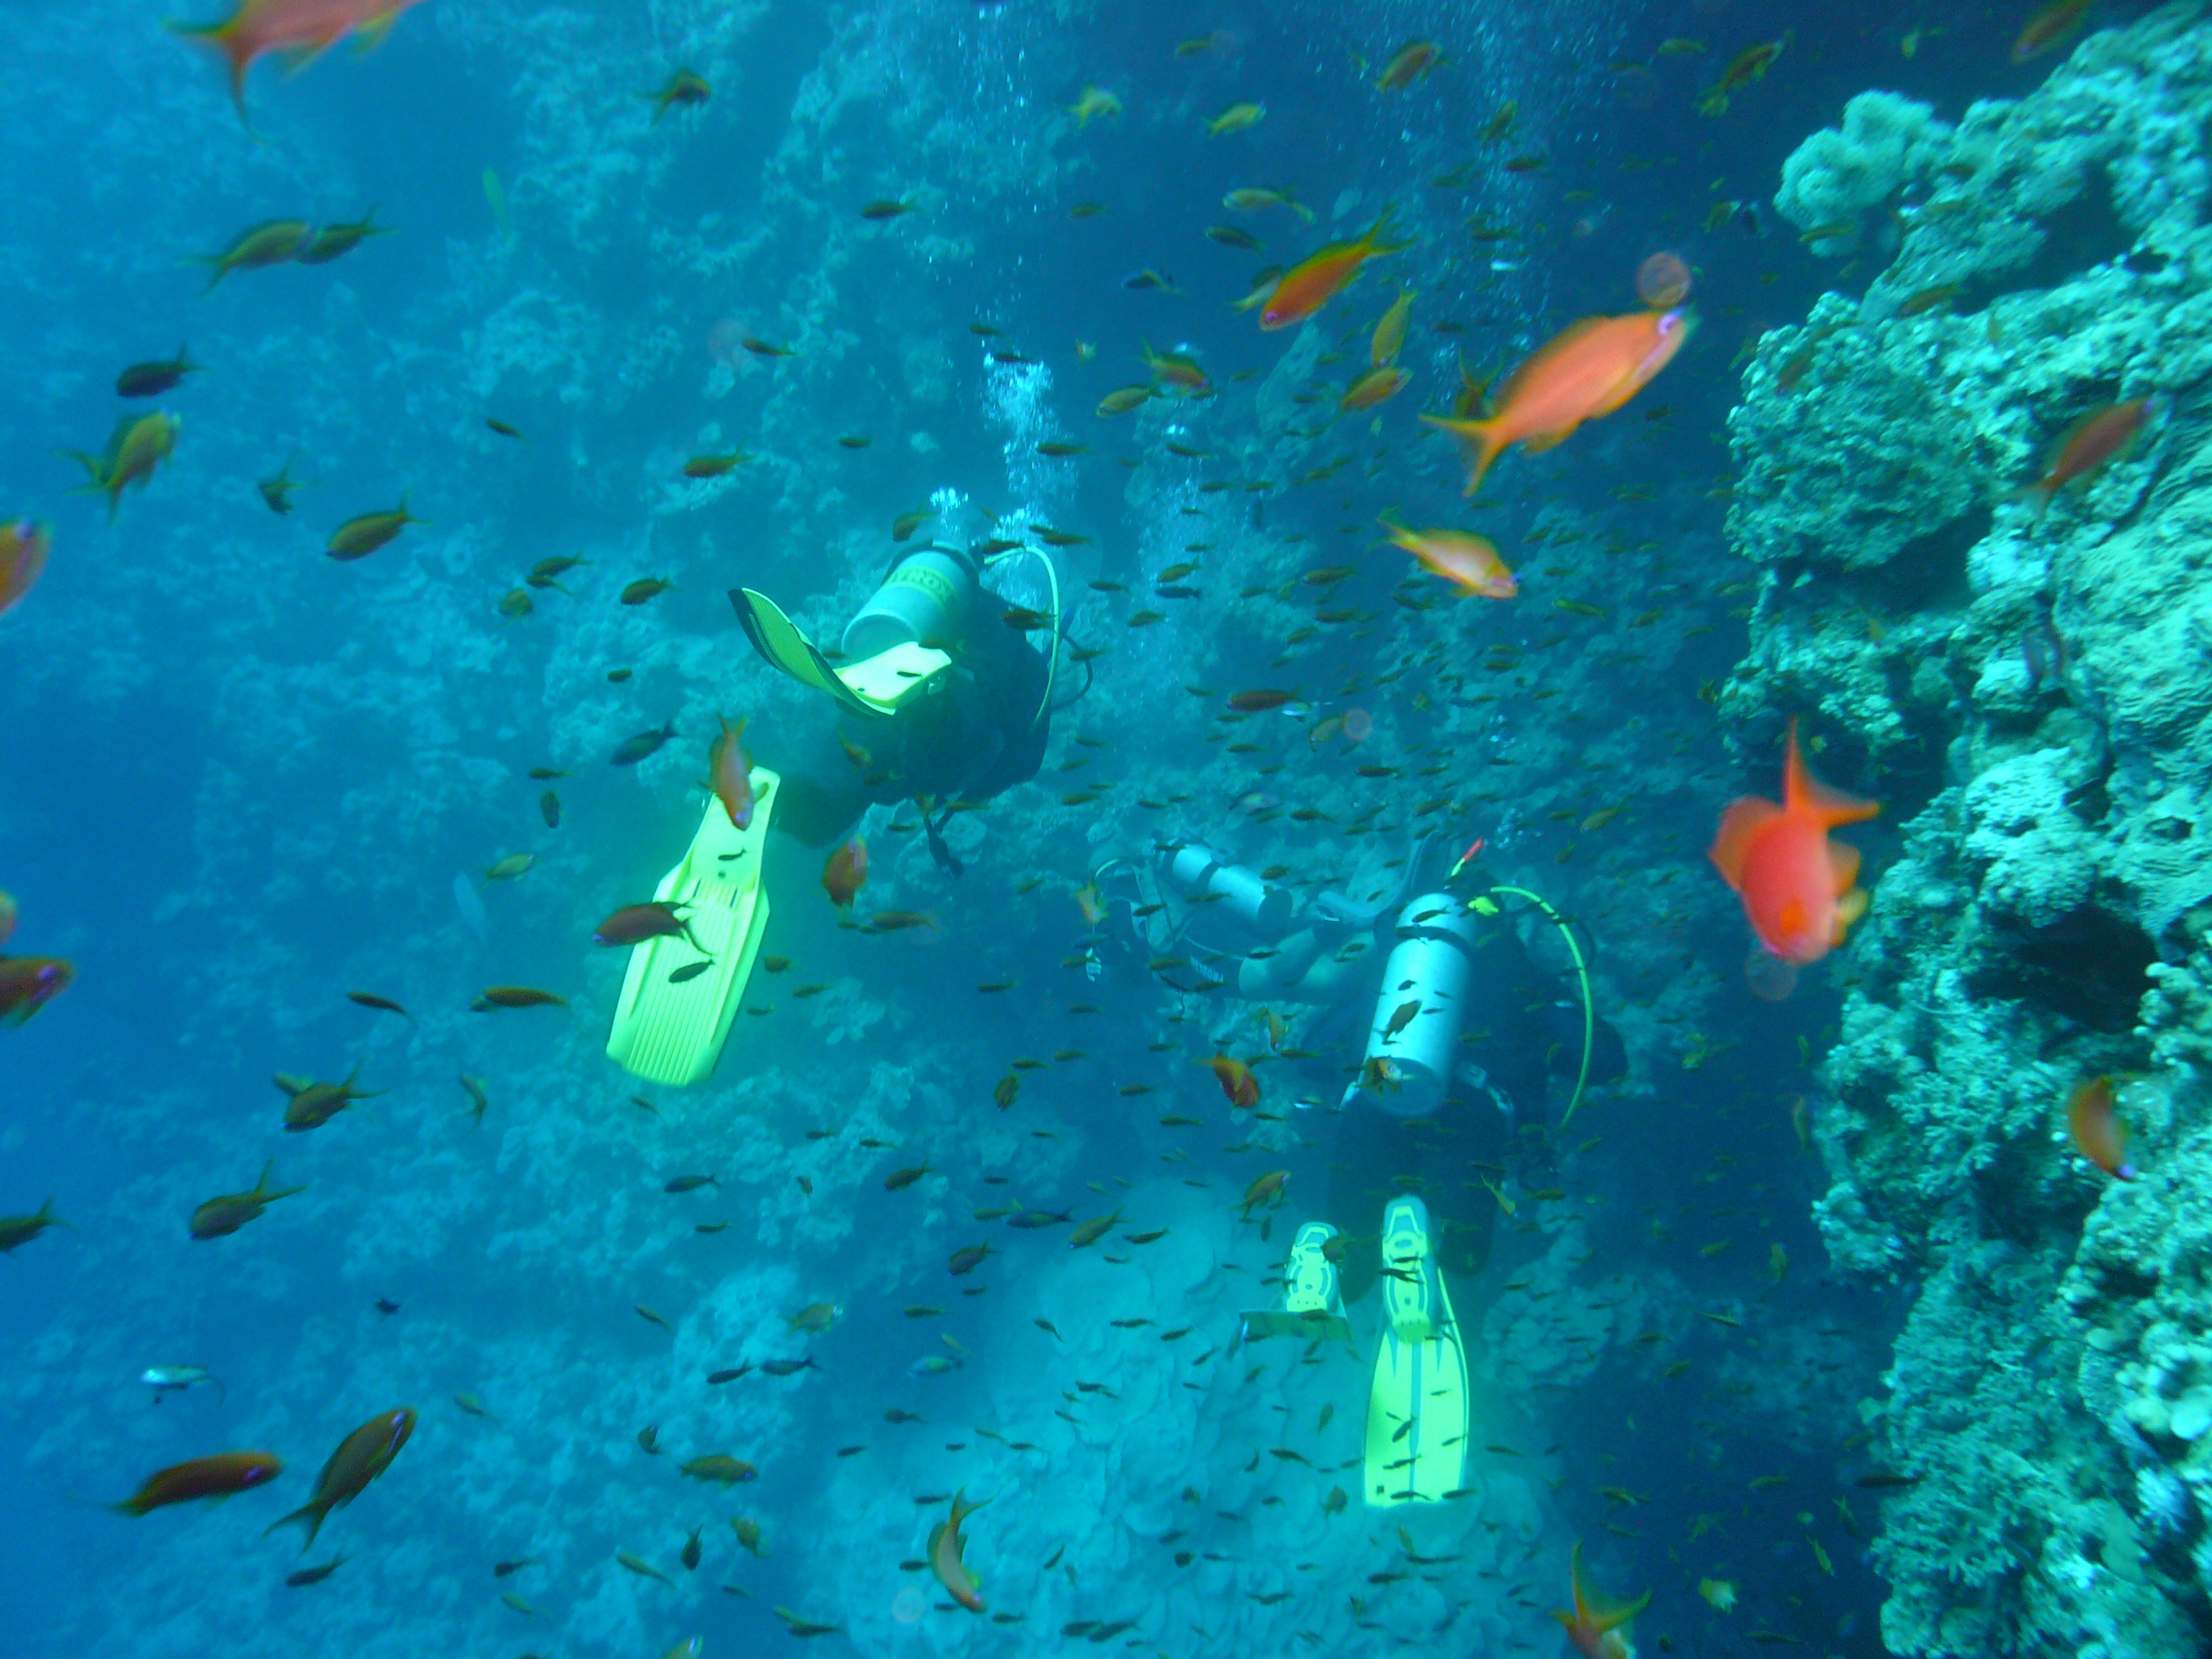 Bells - Blue hole - Sunsplash Divers Club - Dahab - Sinai - Ägypten